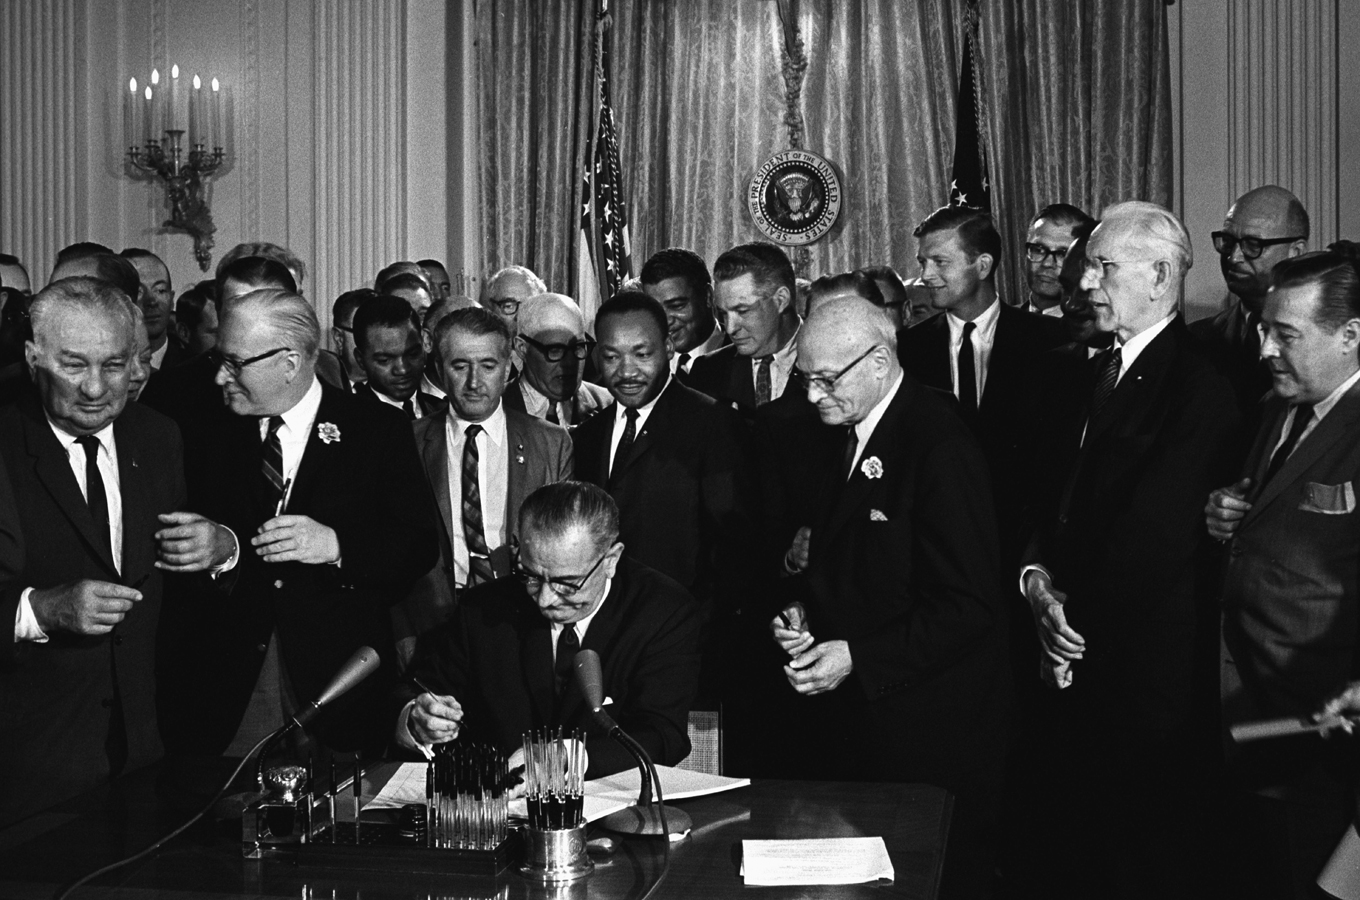 02.07.1964 Präsident Johnson unterzeichnet Civil Rights Act - Martin Luthr King im Hintergrund, Washington, D.C. - Credit: Cecil Stoughton, White House Press Office (WHPO)